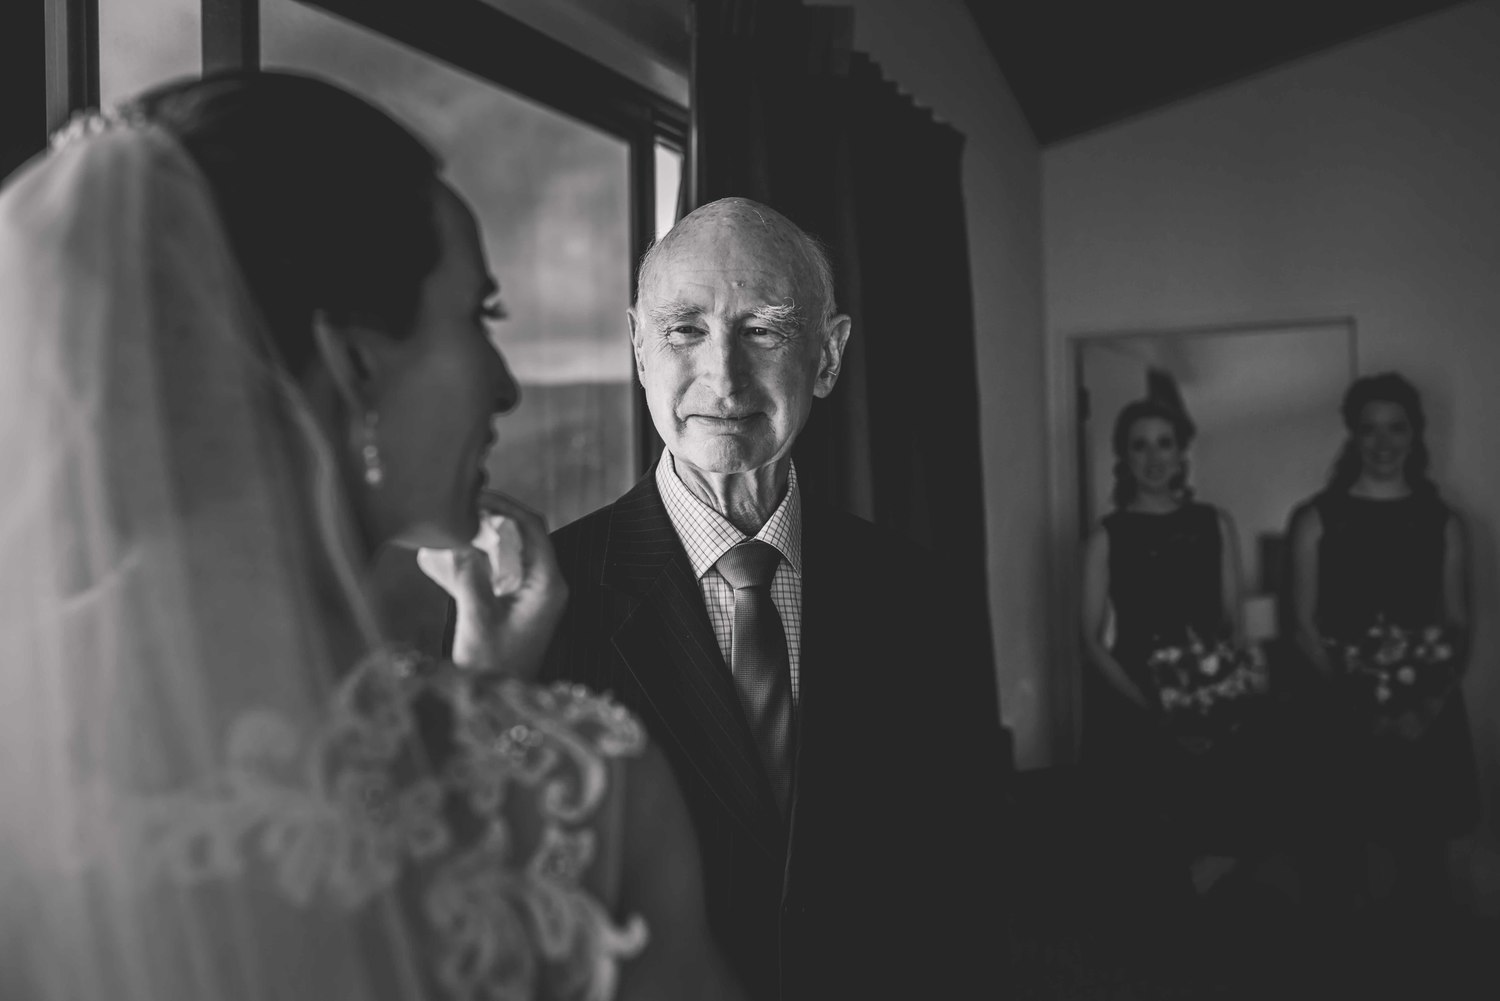 A dad sees the bride for the first time at her wedding